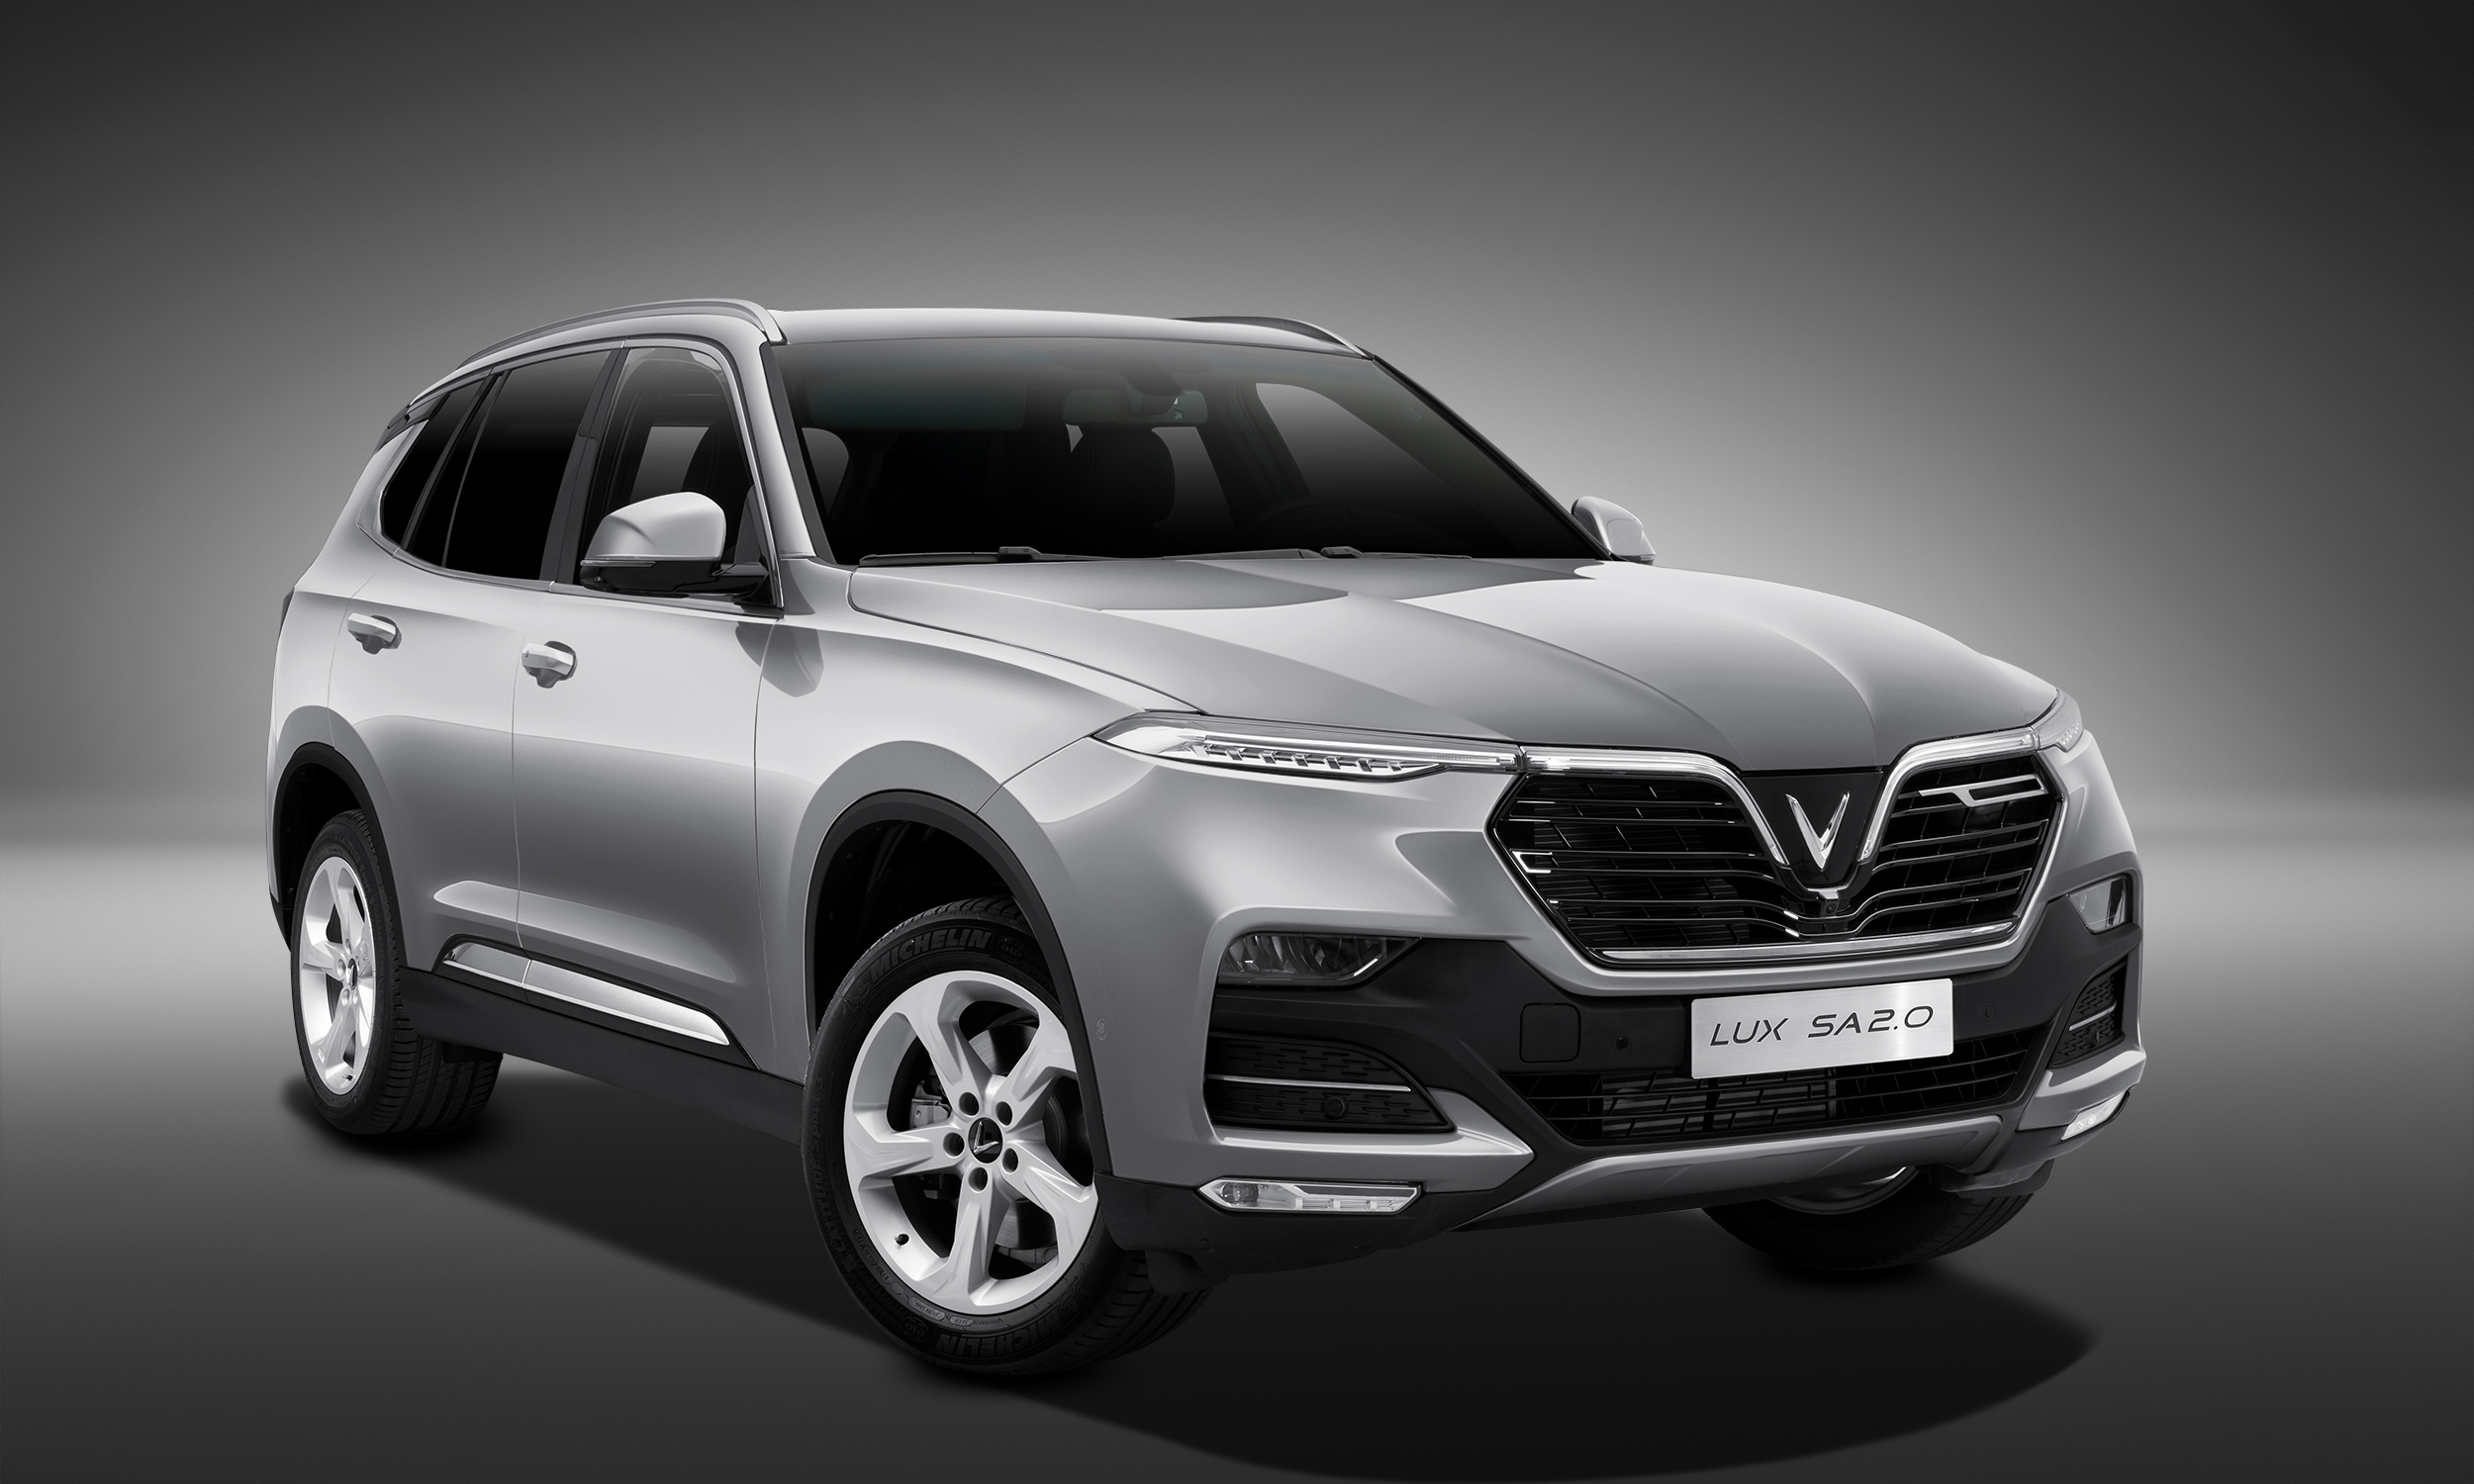 vinfast lux sa2.0 thuoc dong xe SUV